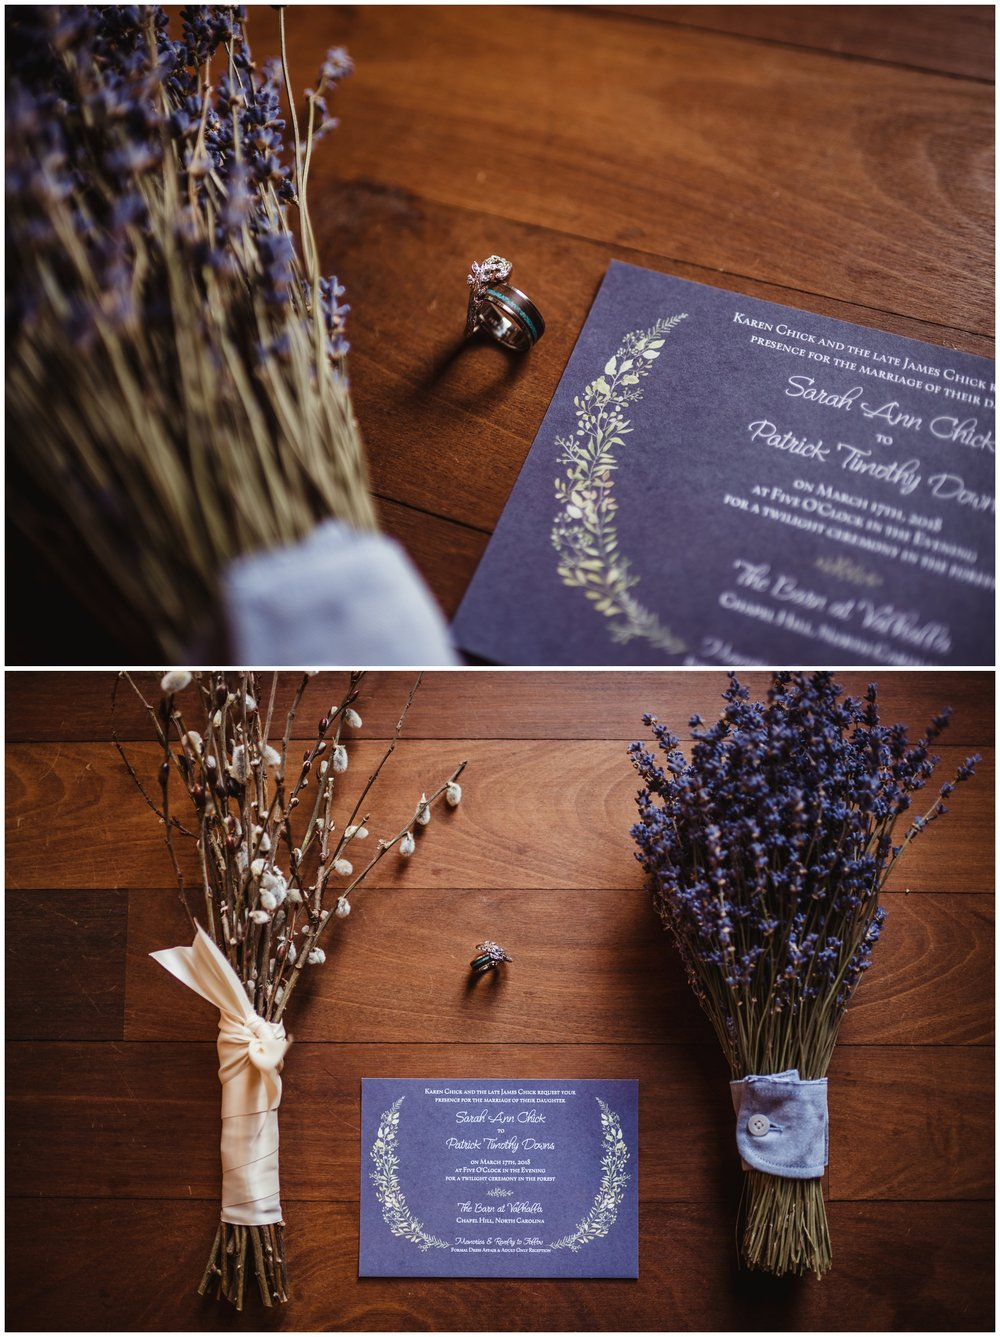 Wedding details such as the invitation, the wedding bands, the bridal bouquet, and a bridesmaid bouquet made of lavender and pussy willows are photographed by Rose Trail Images at the Barn of Valhalla in Chapel Hill.